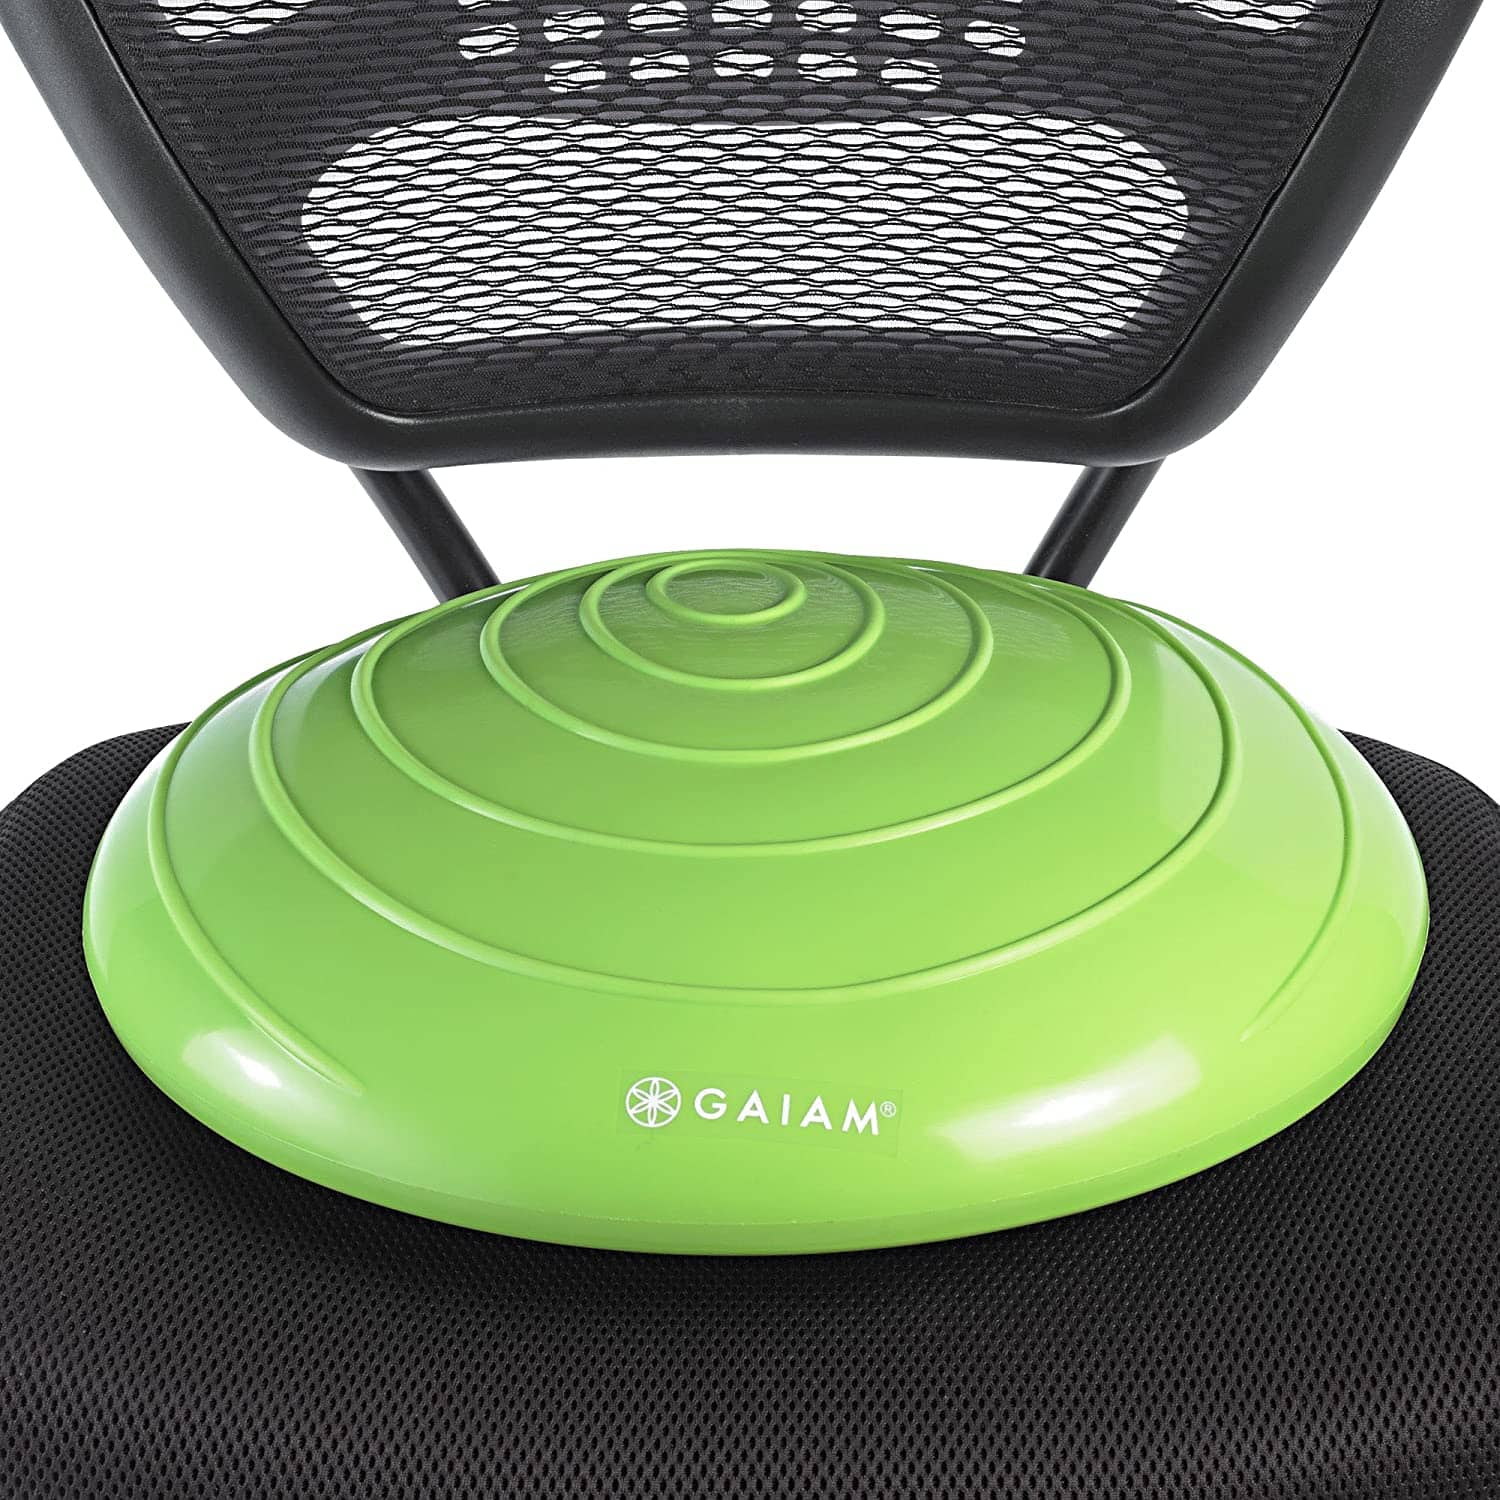 Gaiam Balance Disk Stability Core Trainer Cushion (Wasabi) $11 + Free Ship to Store at Macy's or F/S on $25+